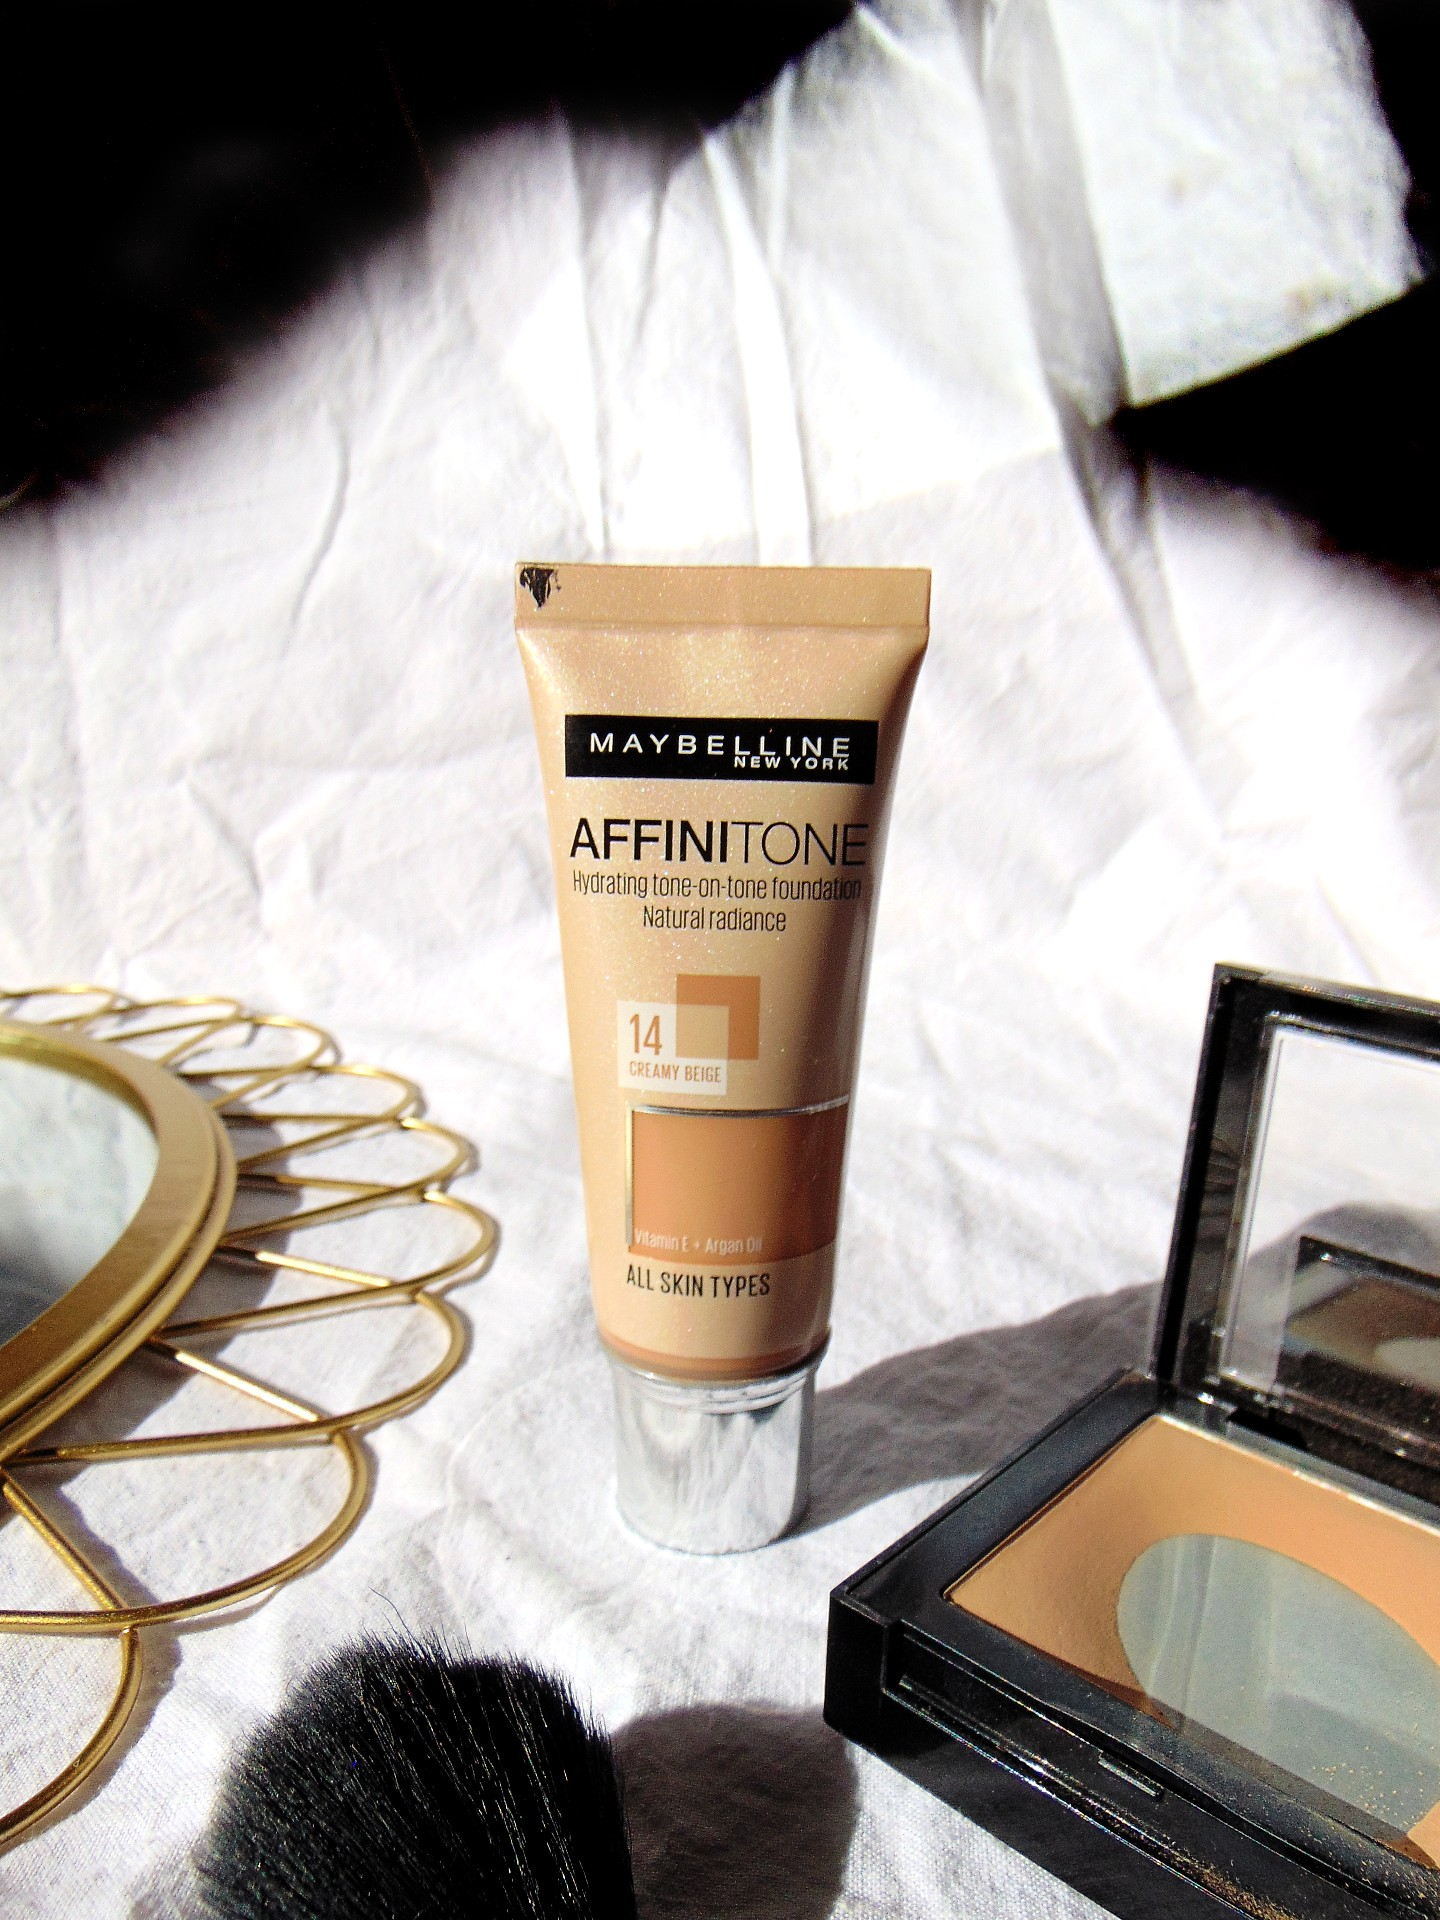 Maybelline Affinitone foundation REVIEW